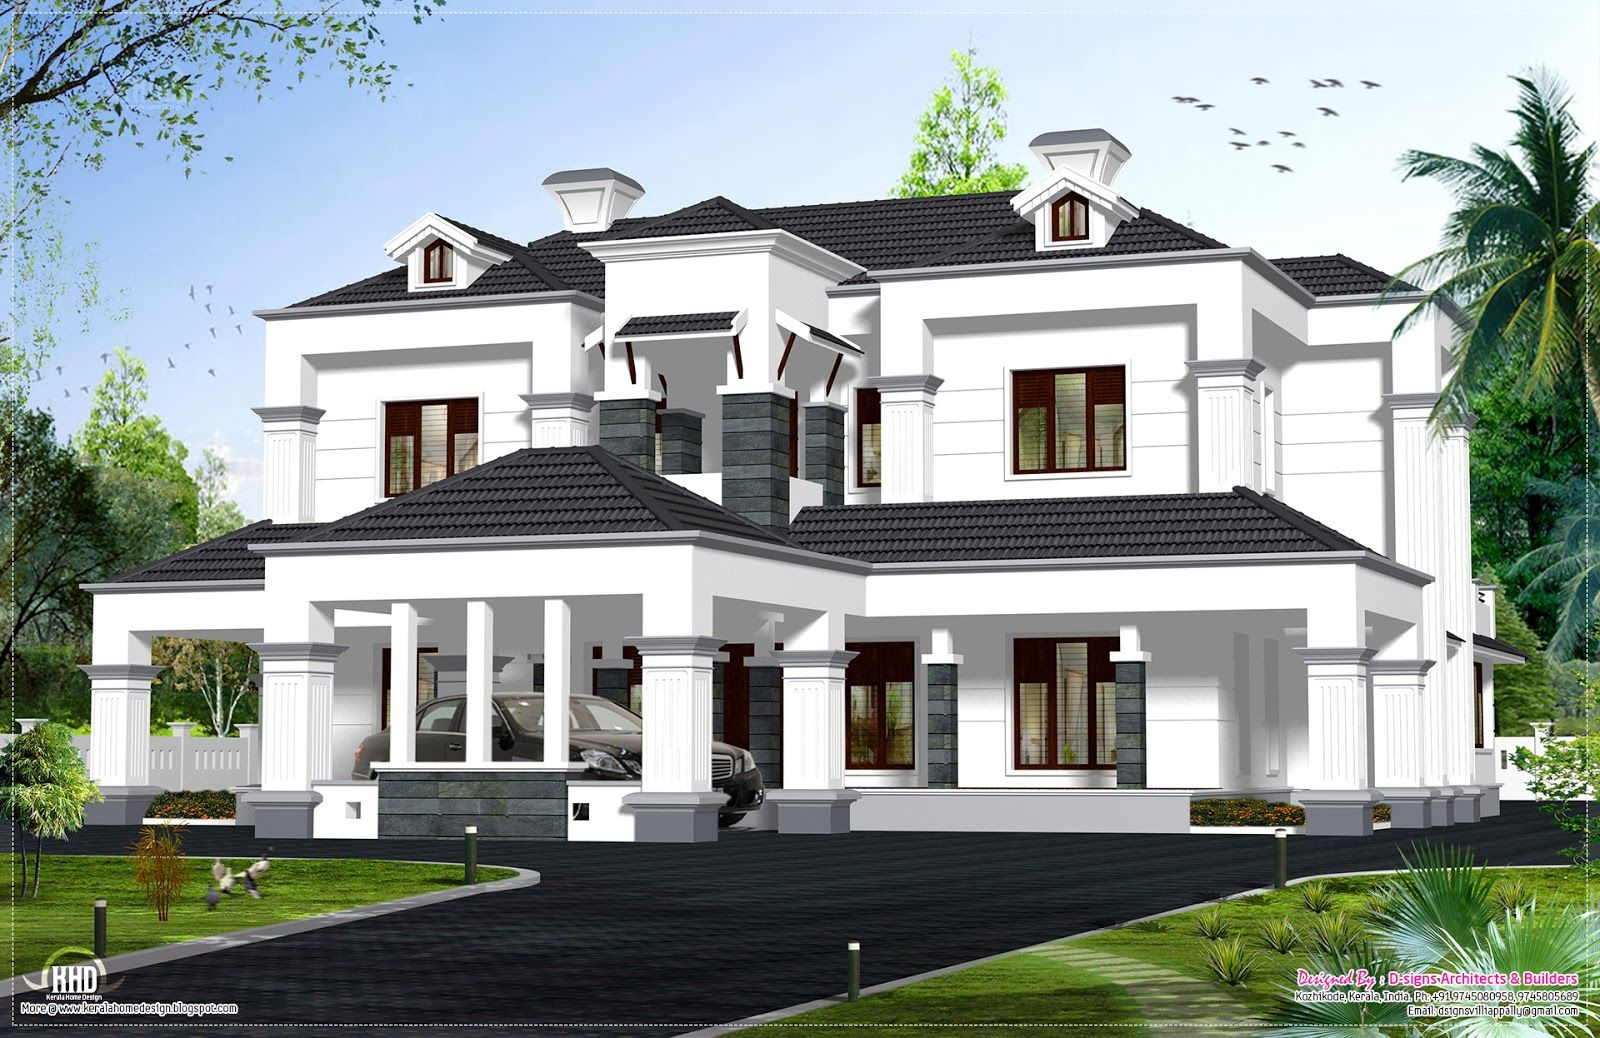 Victorian Style Furniture Home And Interior Design Victorian House Exterior Model Modern House Facades New Model House House Arch Design